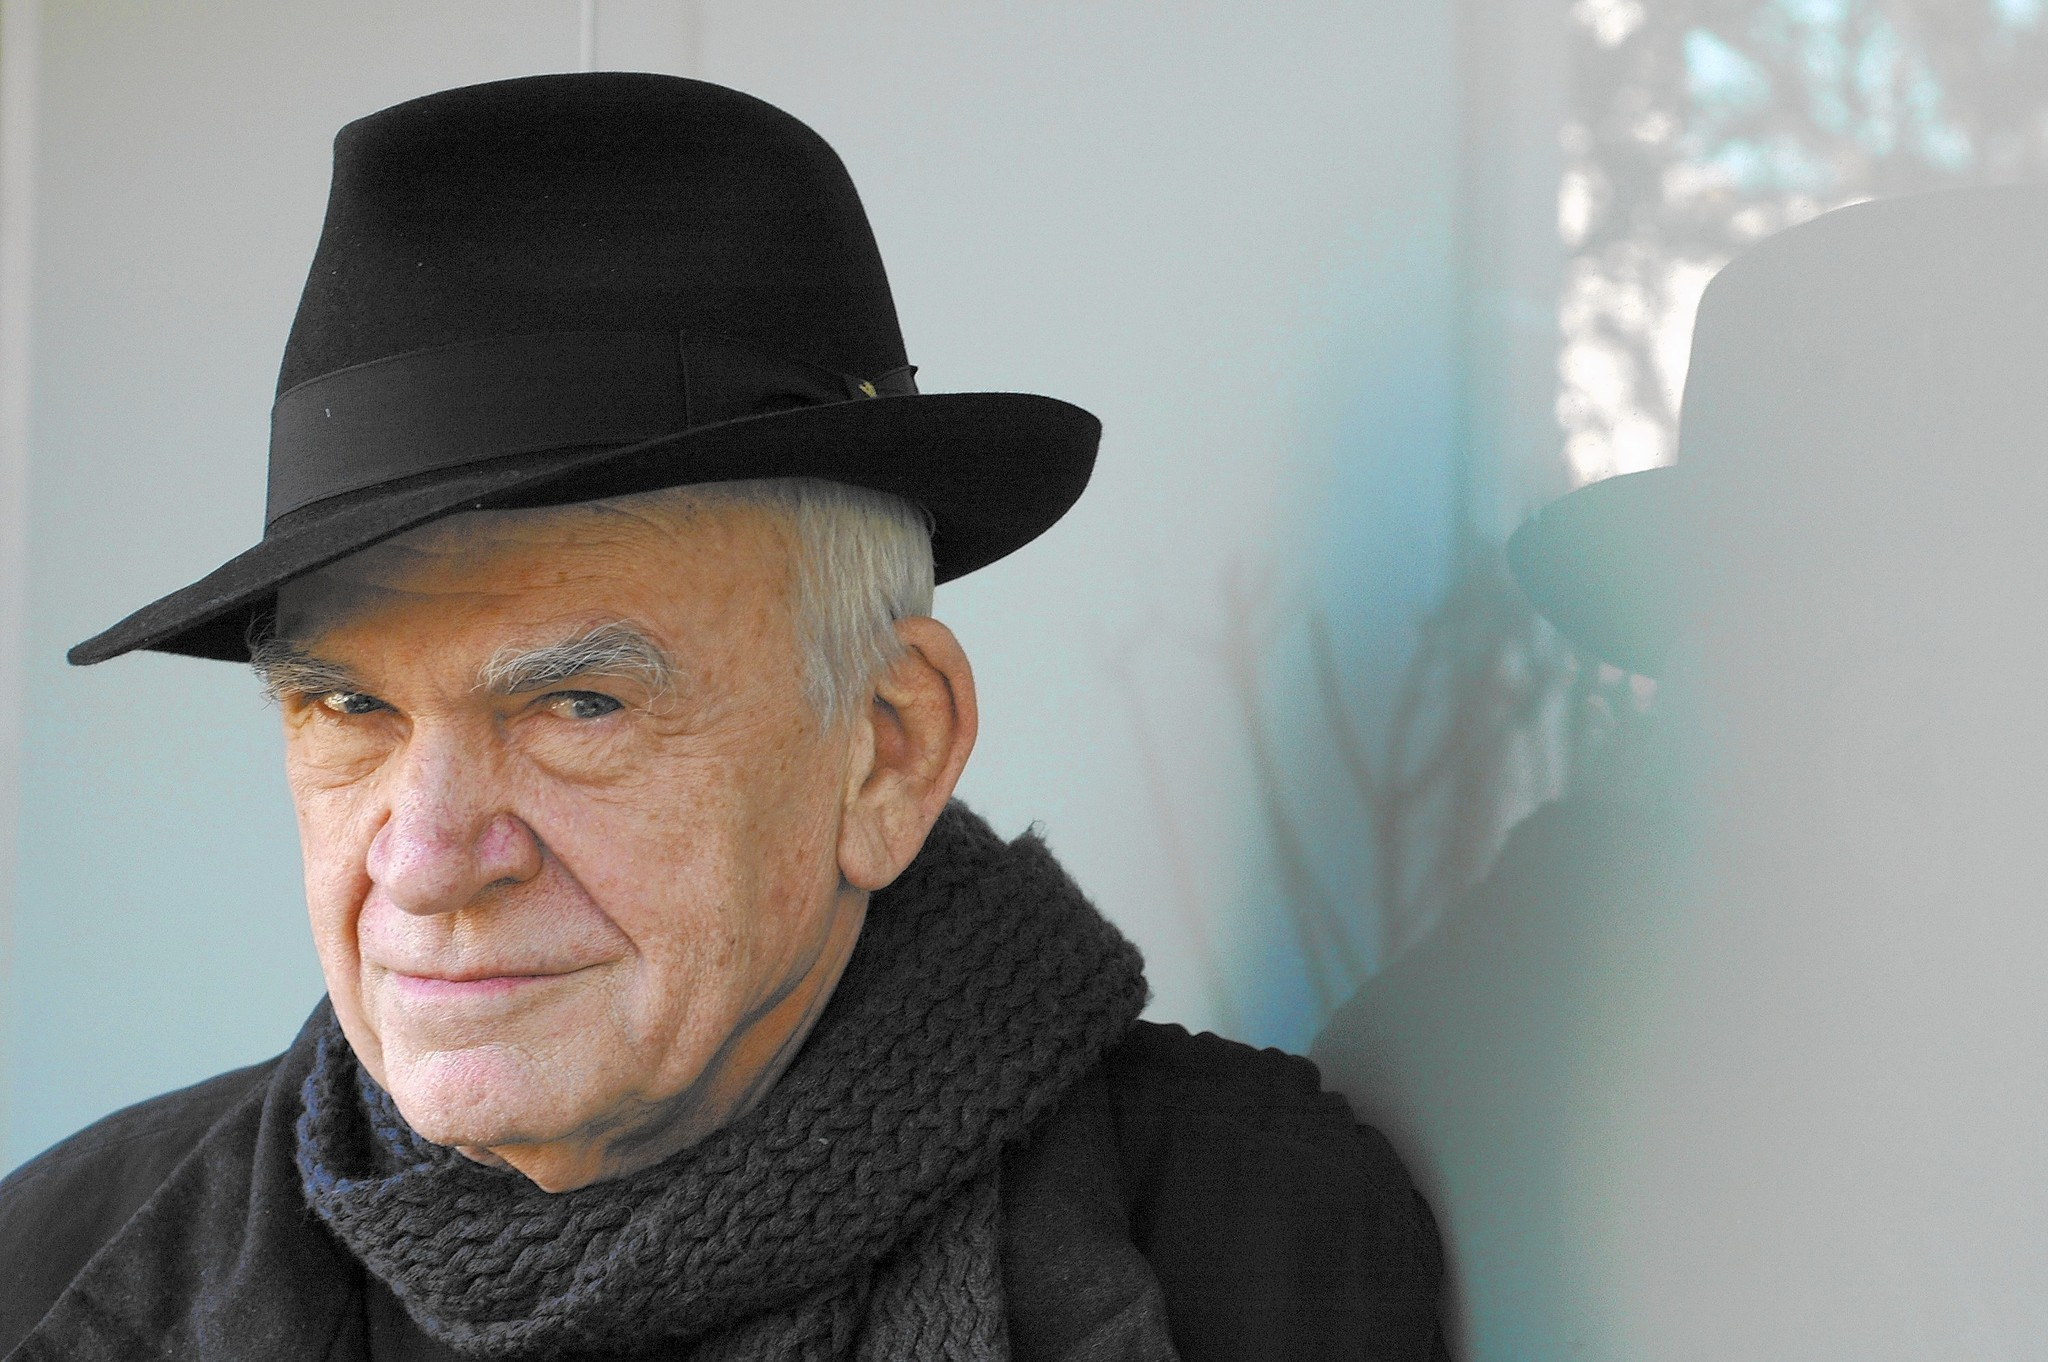 essay kundera milan work Get this from a library agnès's final afternoon : an essay on the work of milan kundera [françois ricard aaron asher] -- francois ricard's book joins the great french tradition of the literary essay as a meditation on the writing of milan kundera.